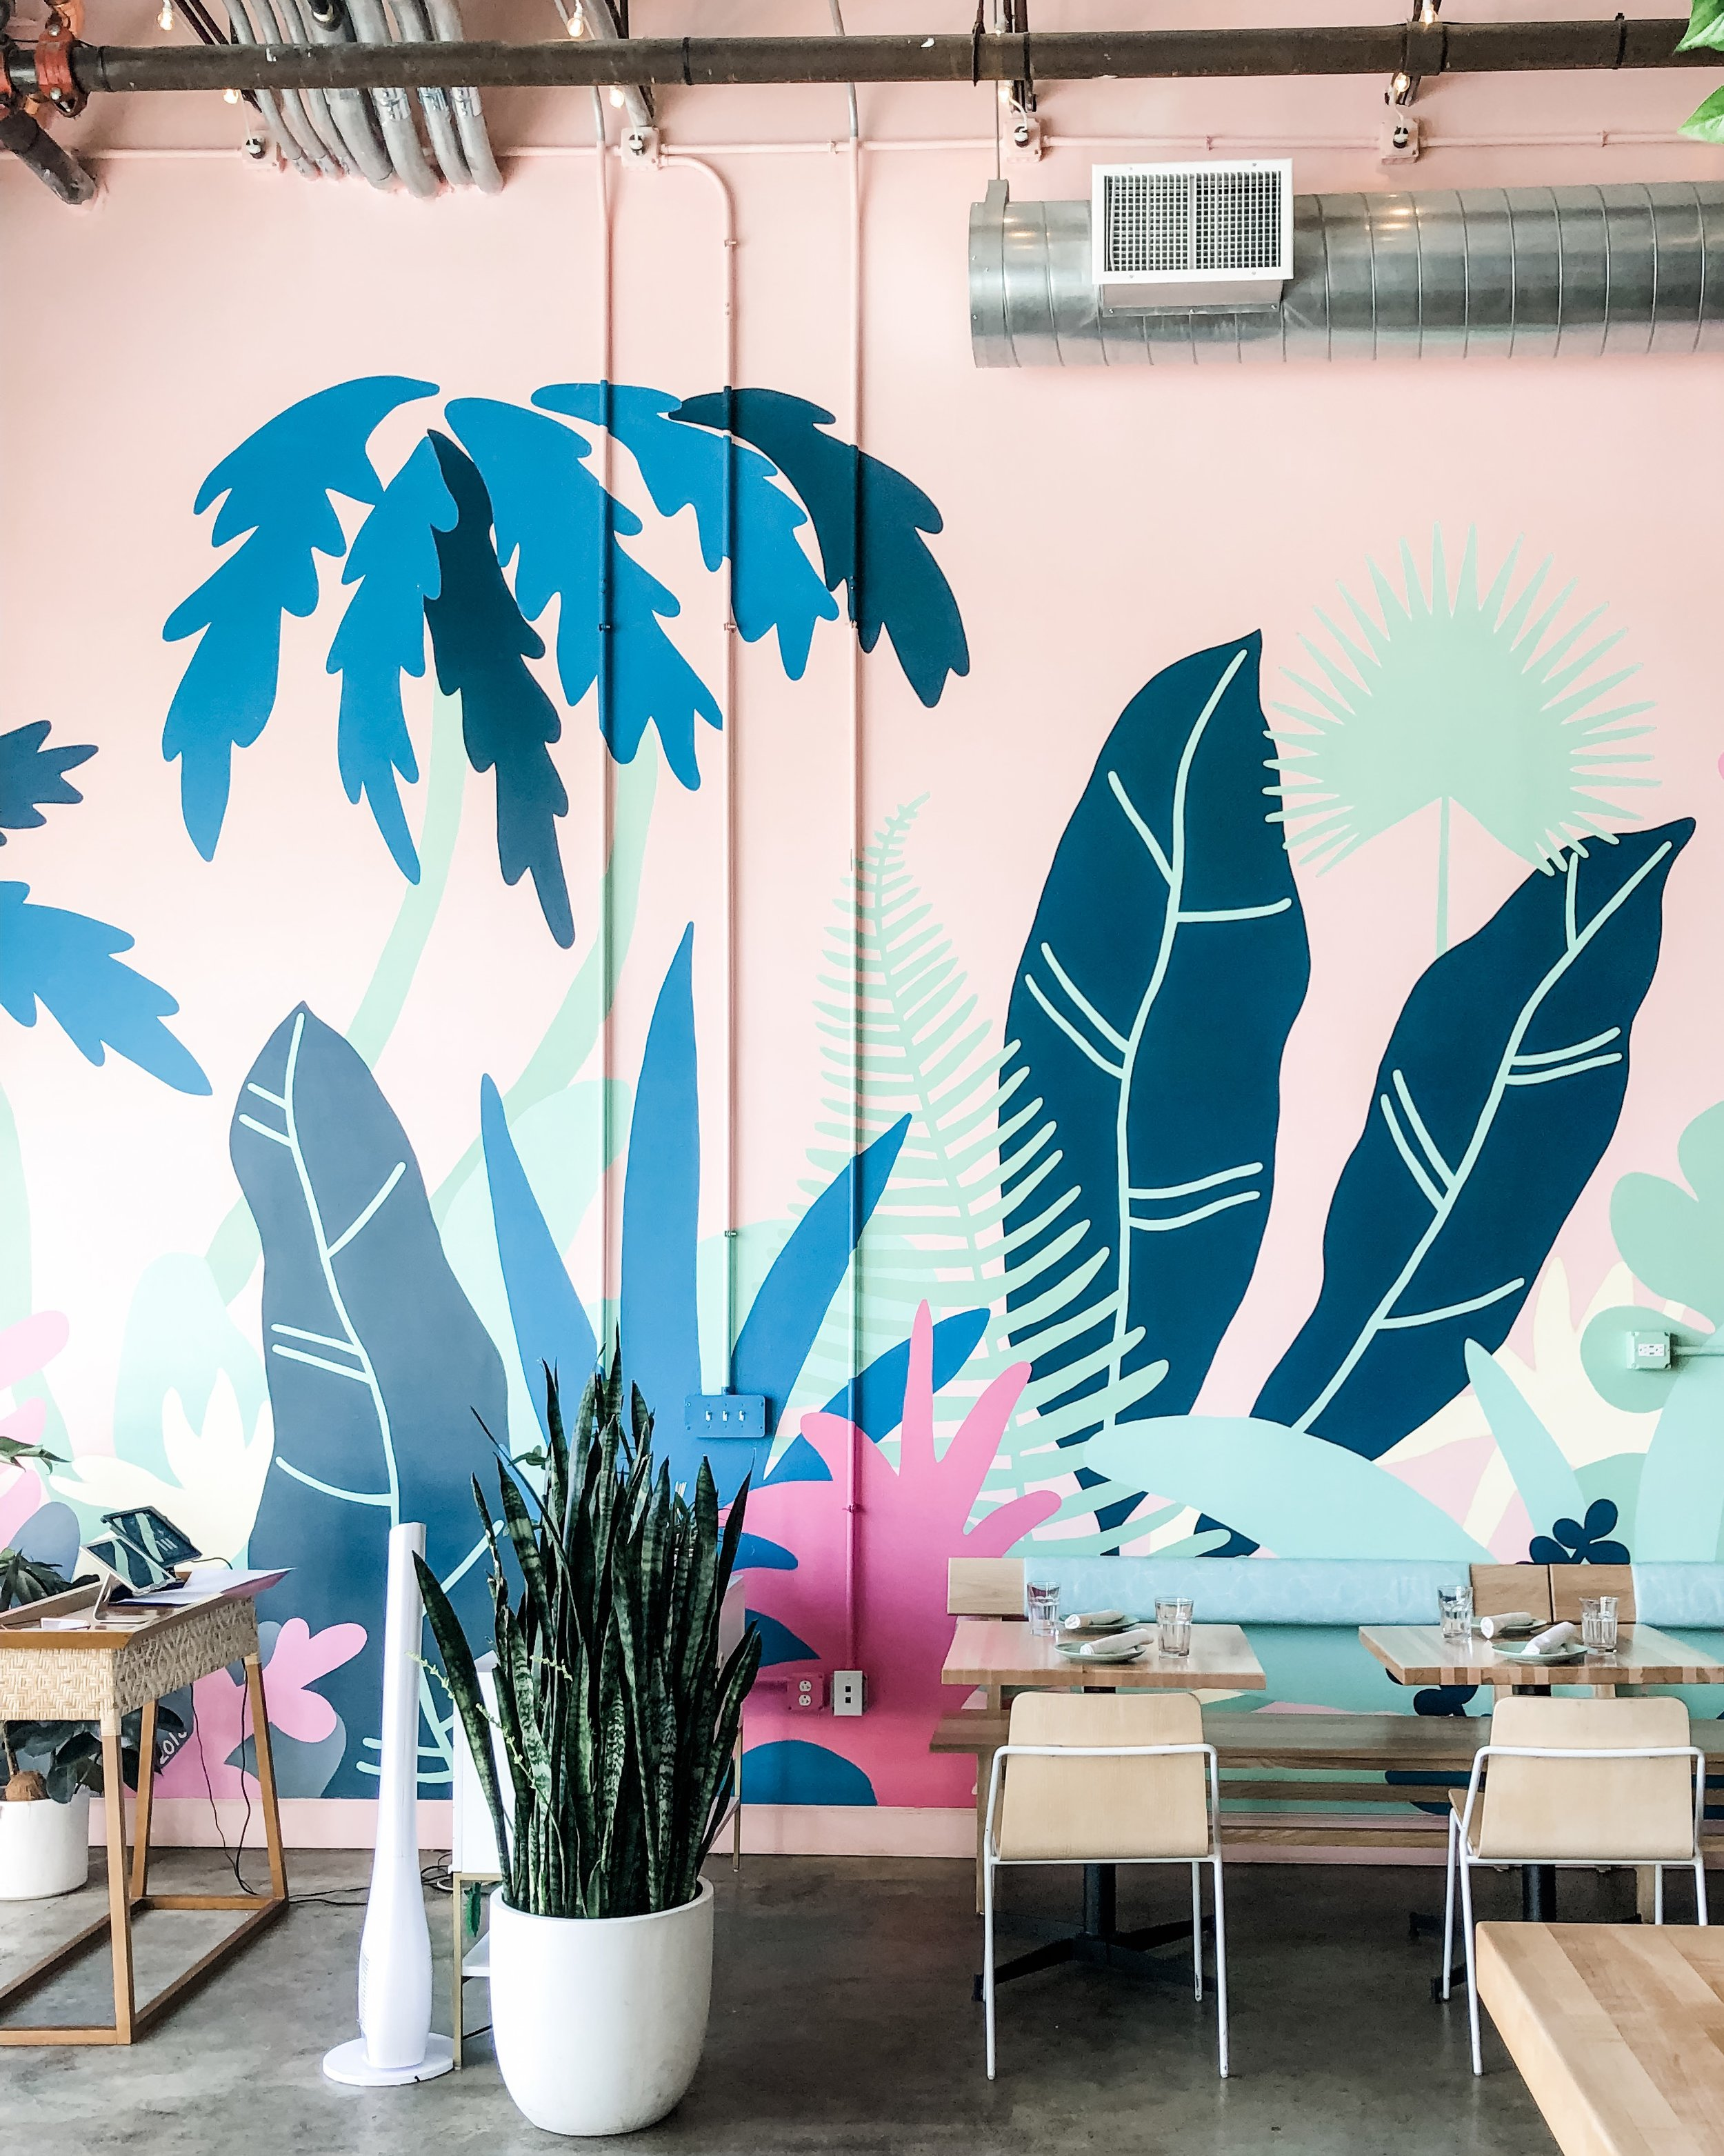 mural by Meg Biram for The Coconut Club